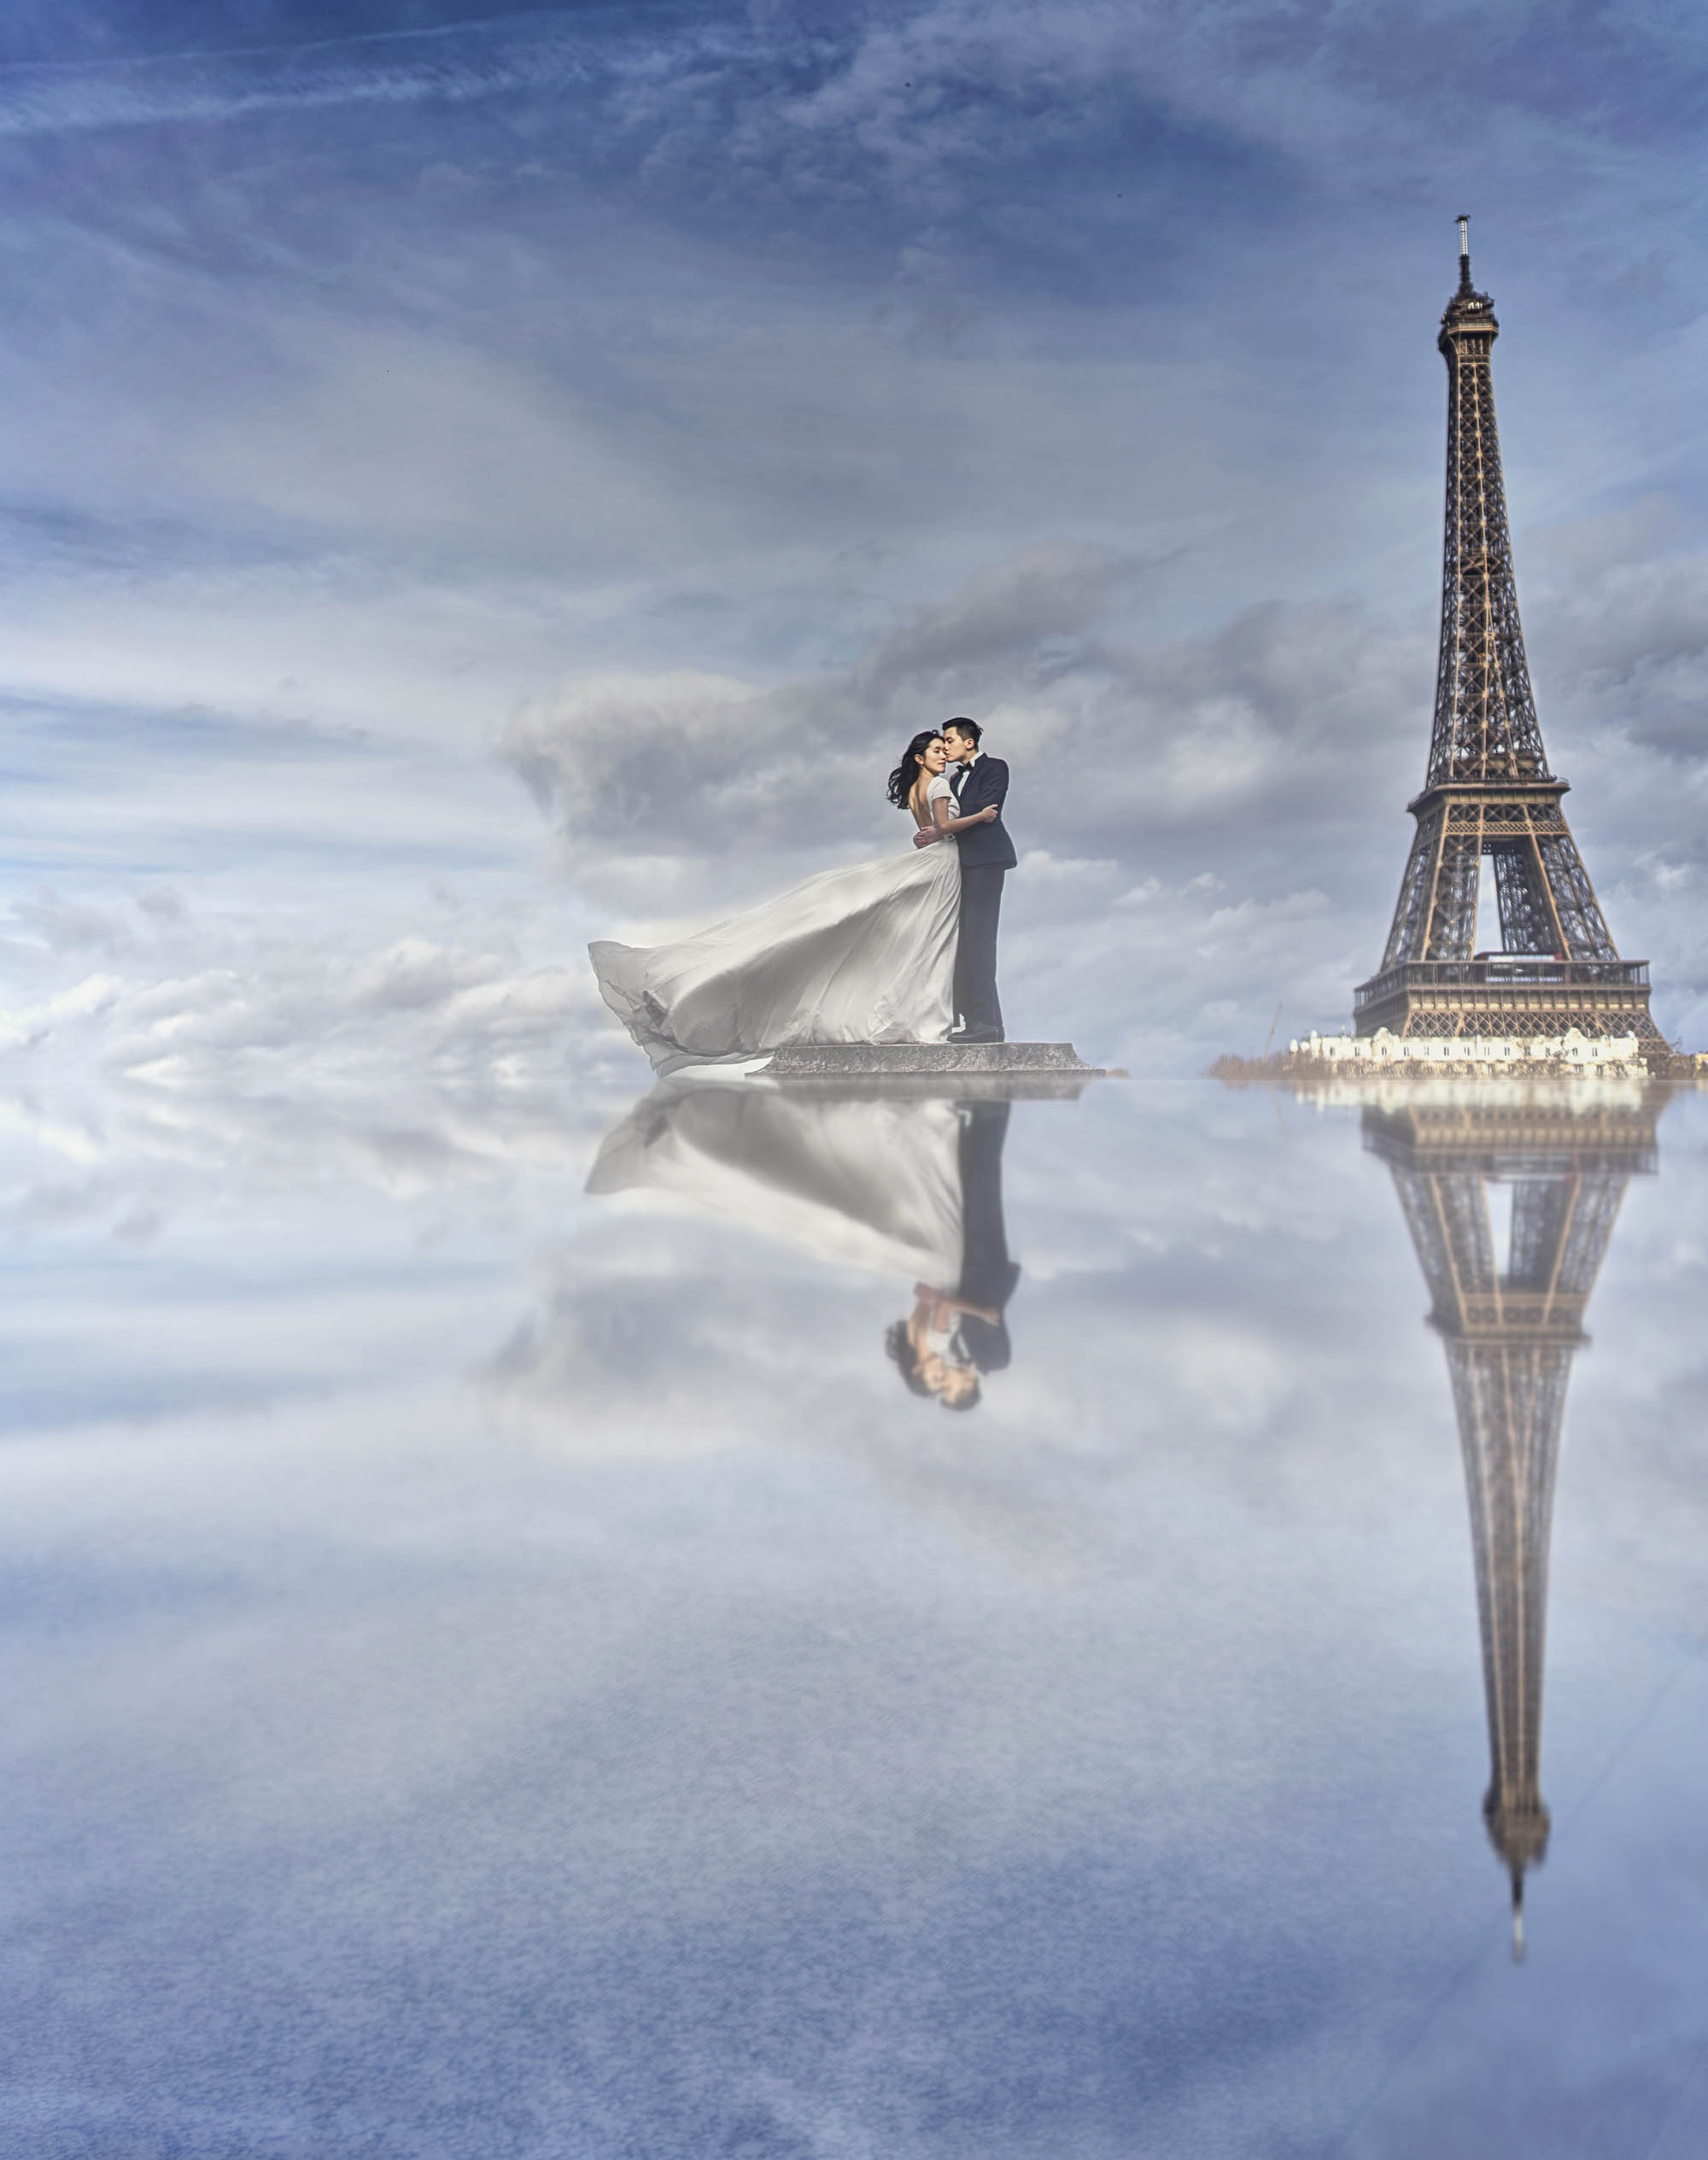 Bride in beautiful satin ballgown and groom in tuxedo by Eiffel Tower, by CM Leung